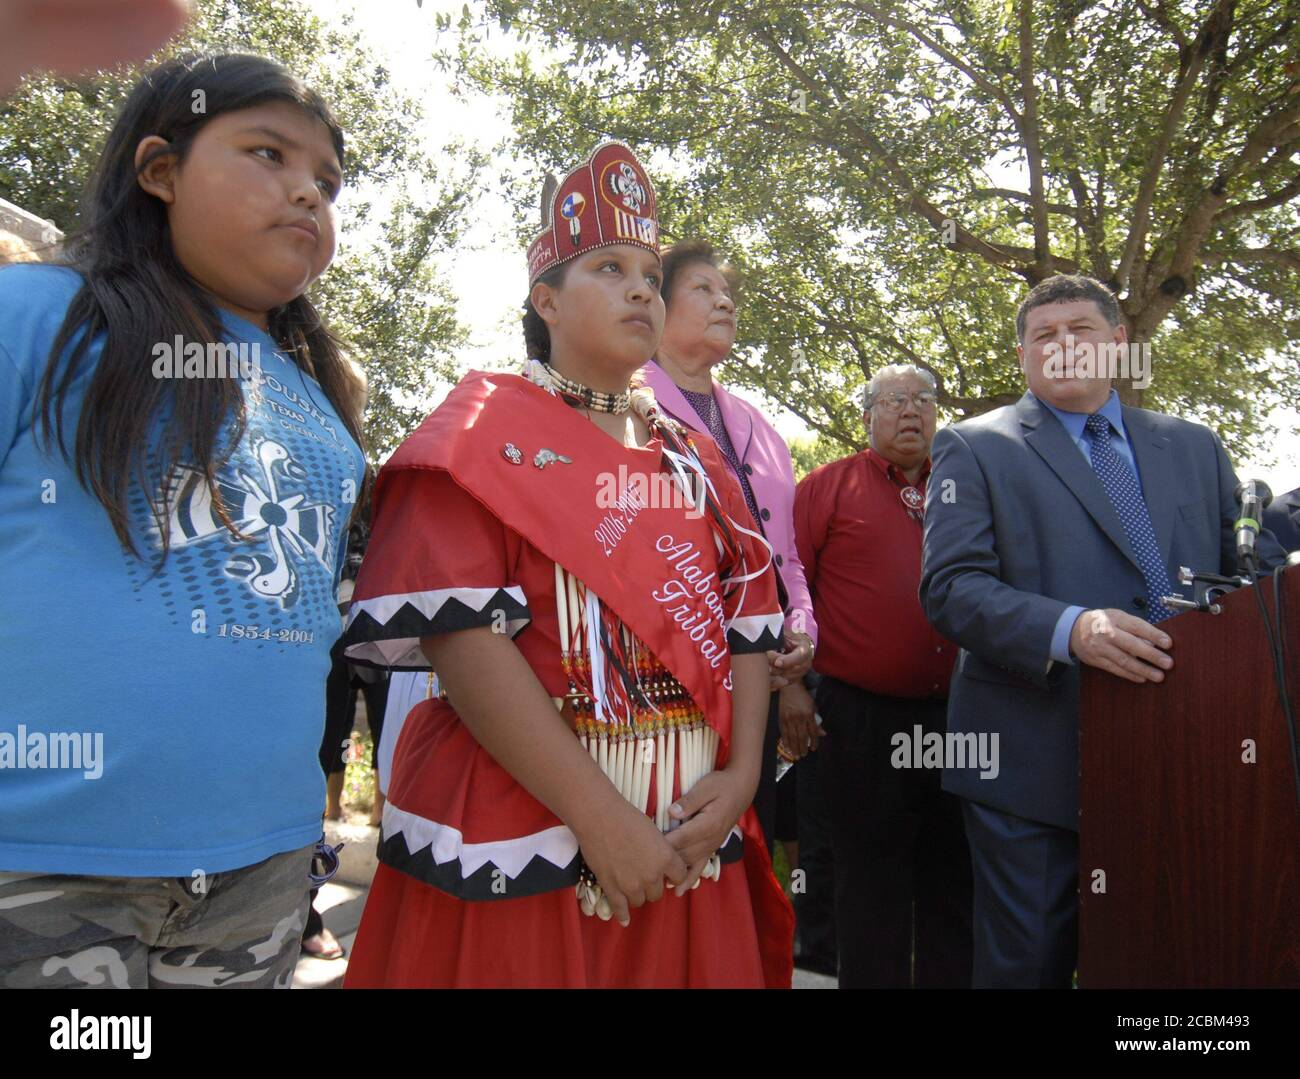 Austin Texas July 12 2006 The Alabama Coshutta Tribe Of Texas Announces At The State Capitol That It Has Filed A Federa Lawsuit Against Former Lobbyist Jack Abramoff Partner Michael Scanlon Lobbyist Ralph